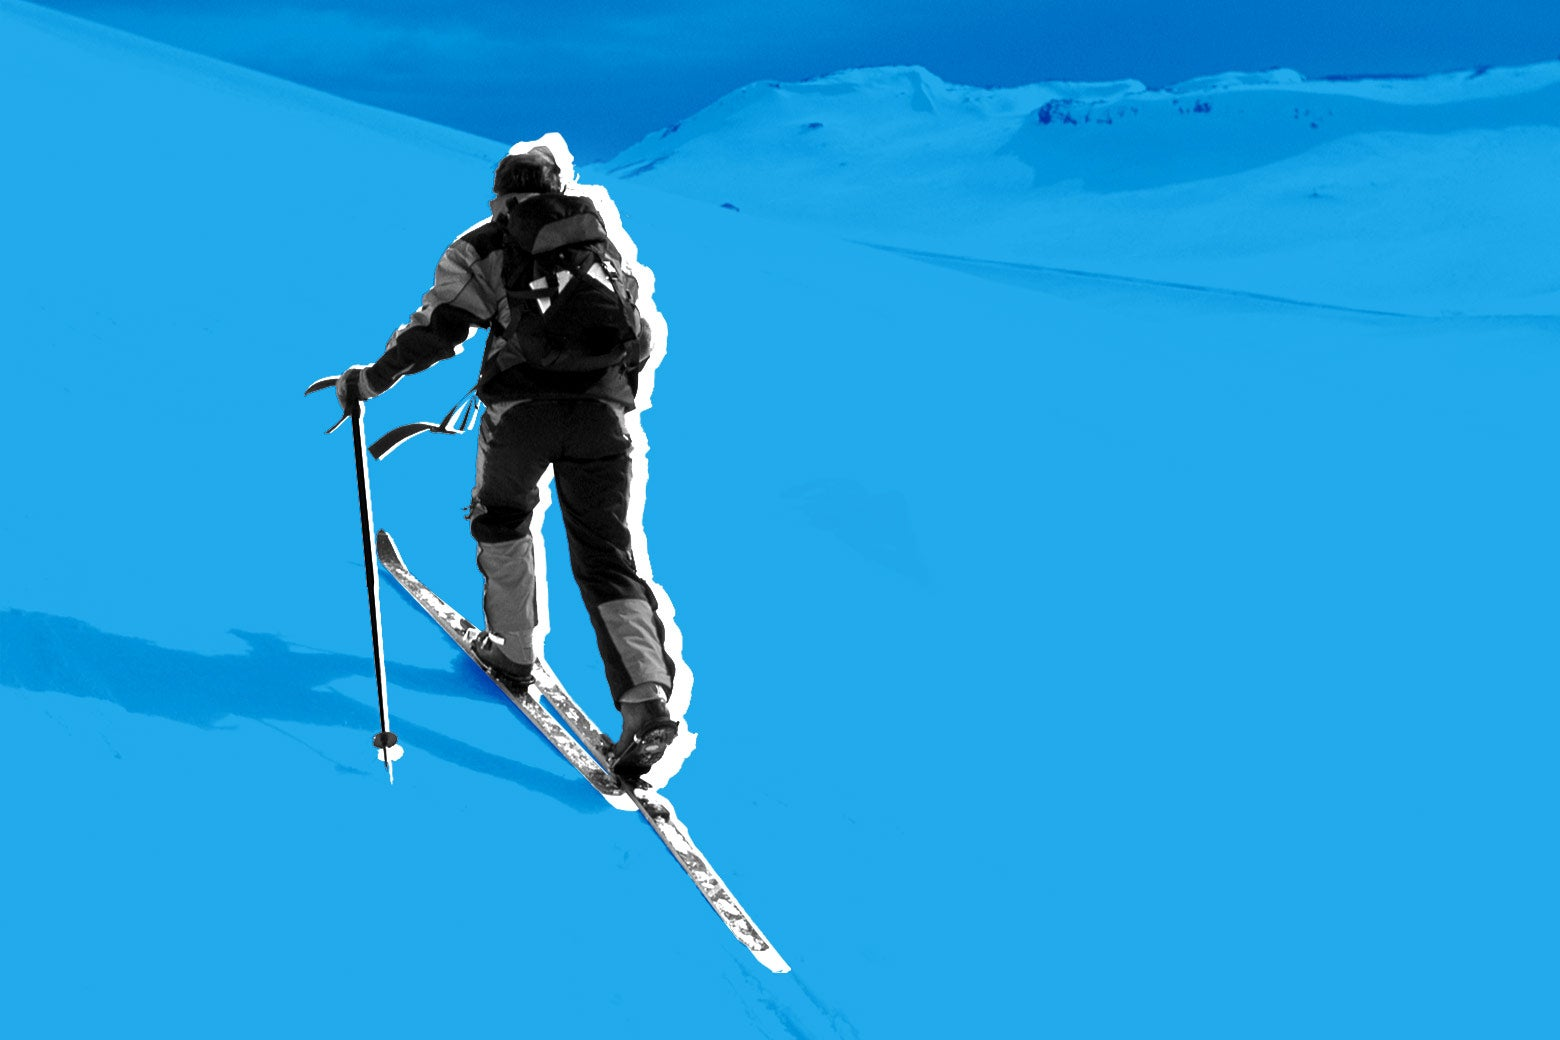 A cross-country skiier.